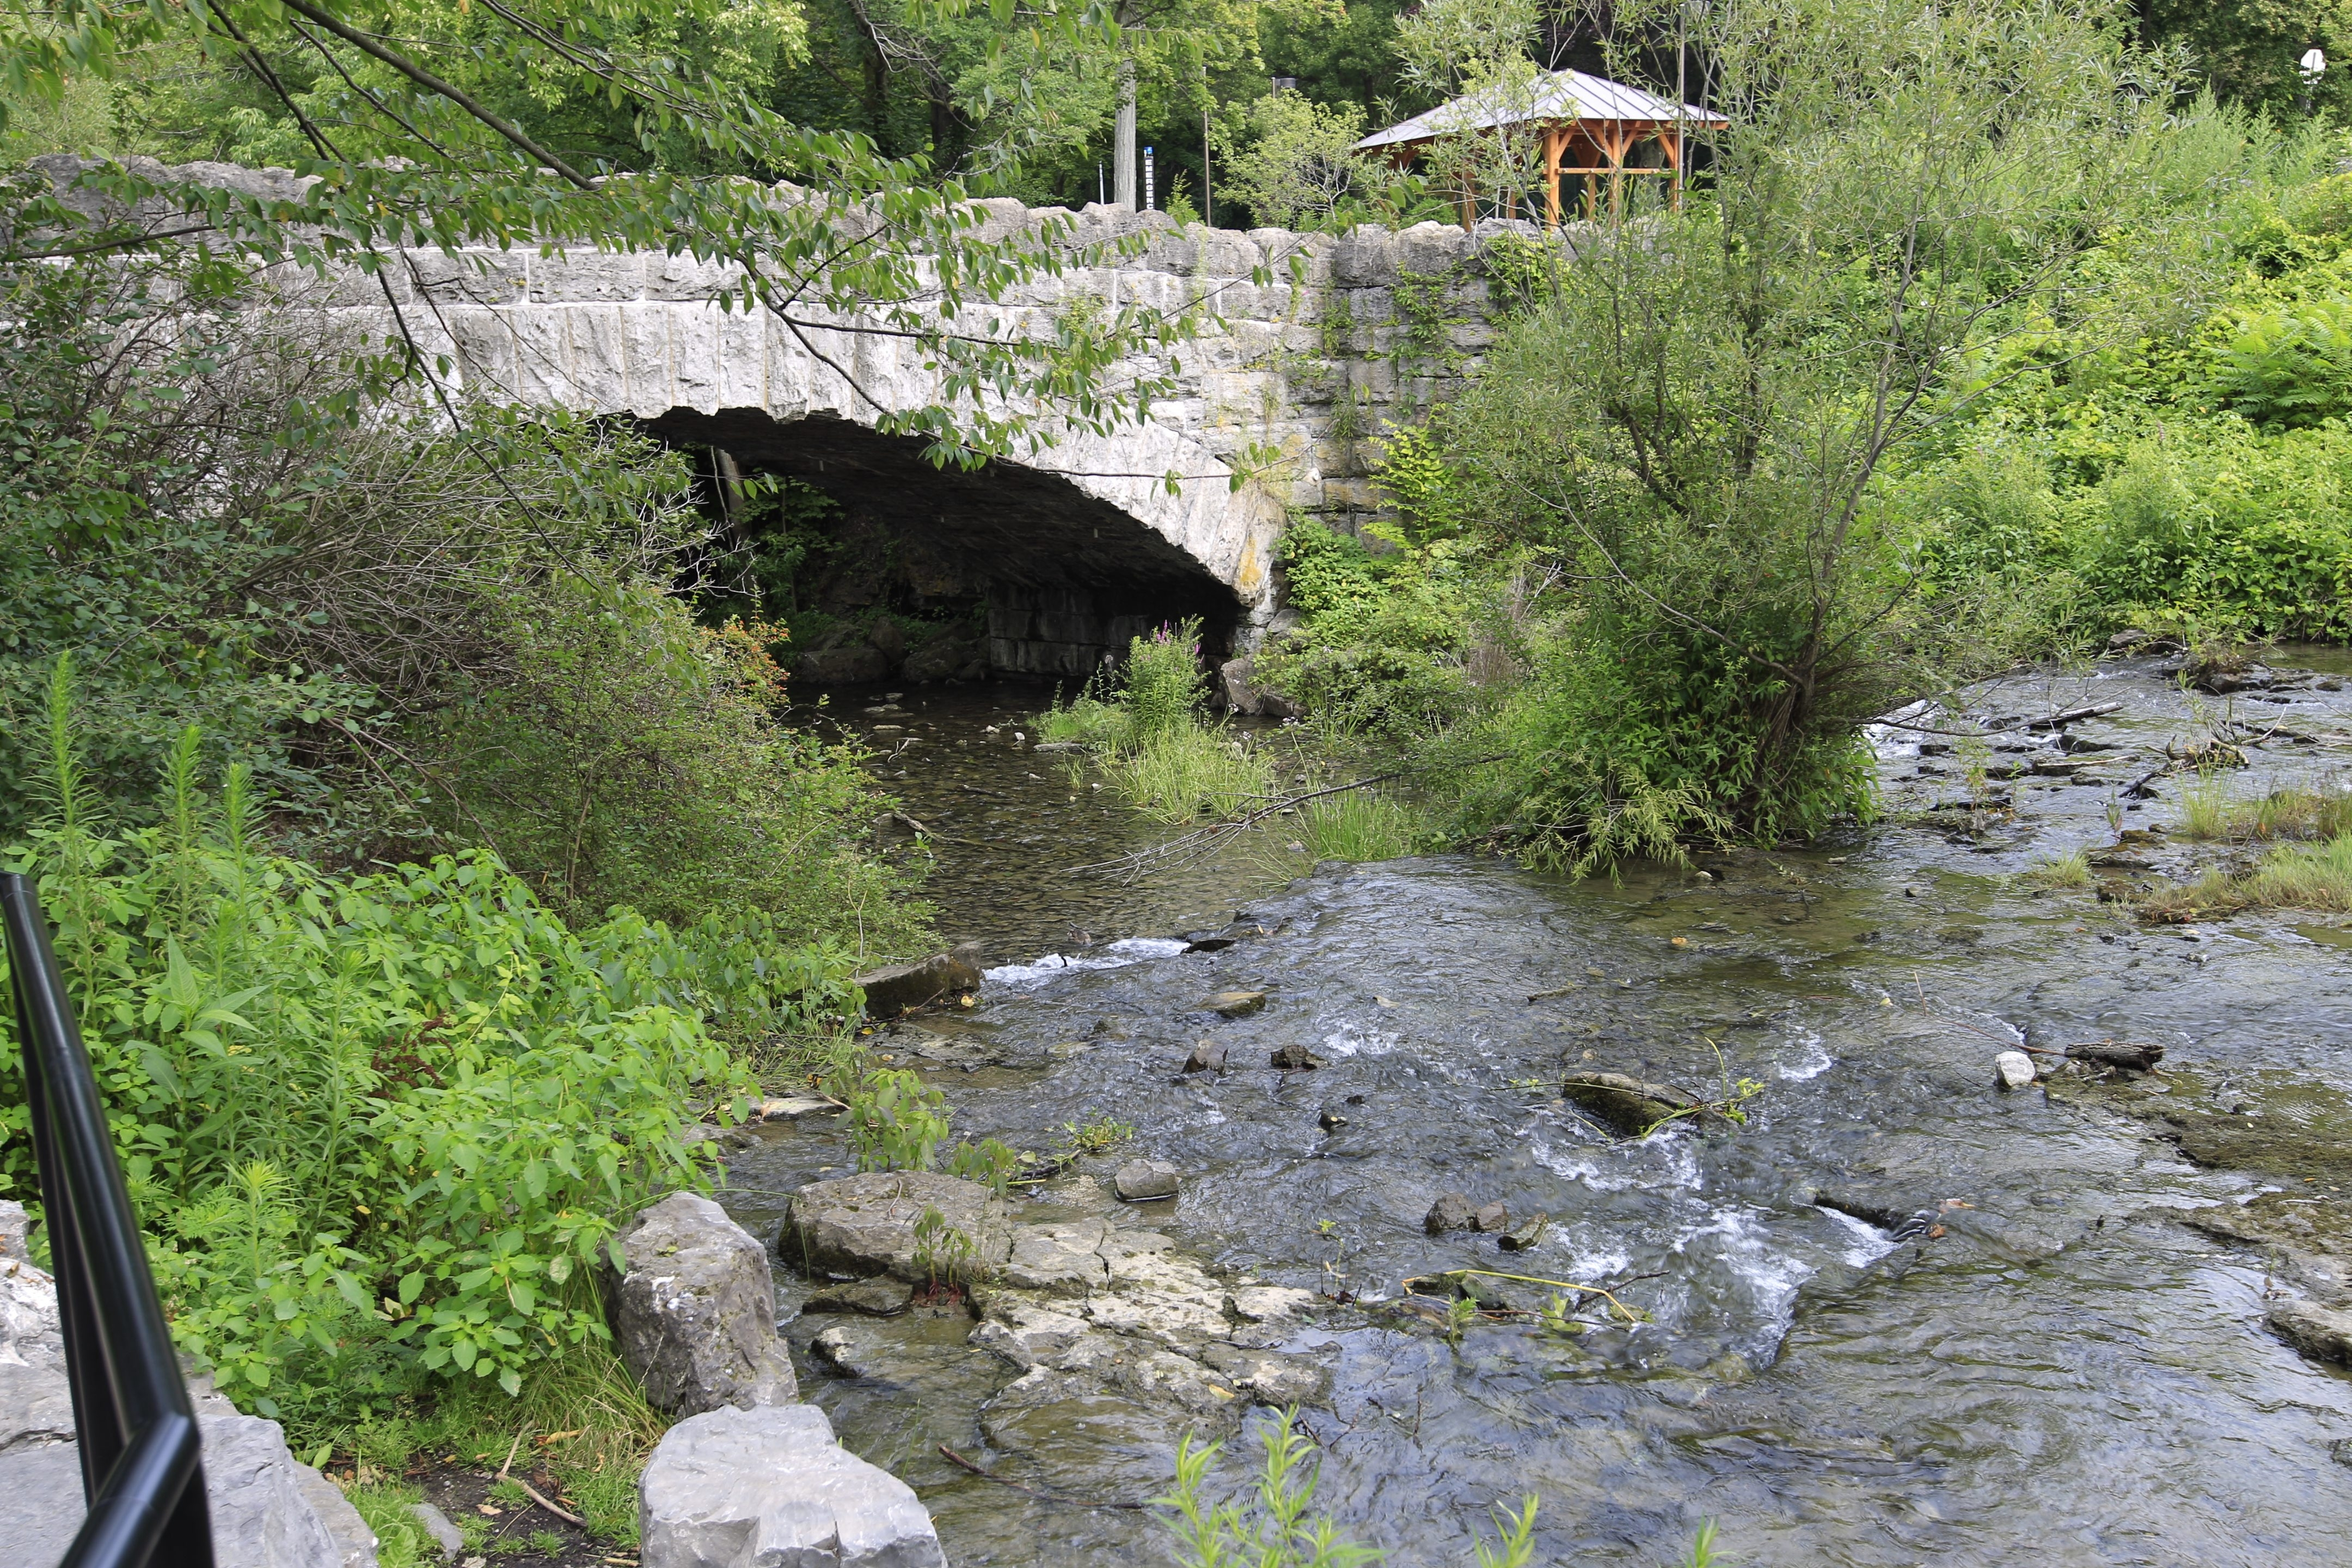 Three Sisters Islands: An old stone bridge links the islands in Niagara Falls State Park, where you can listen to the birds and rolling water.